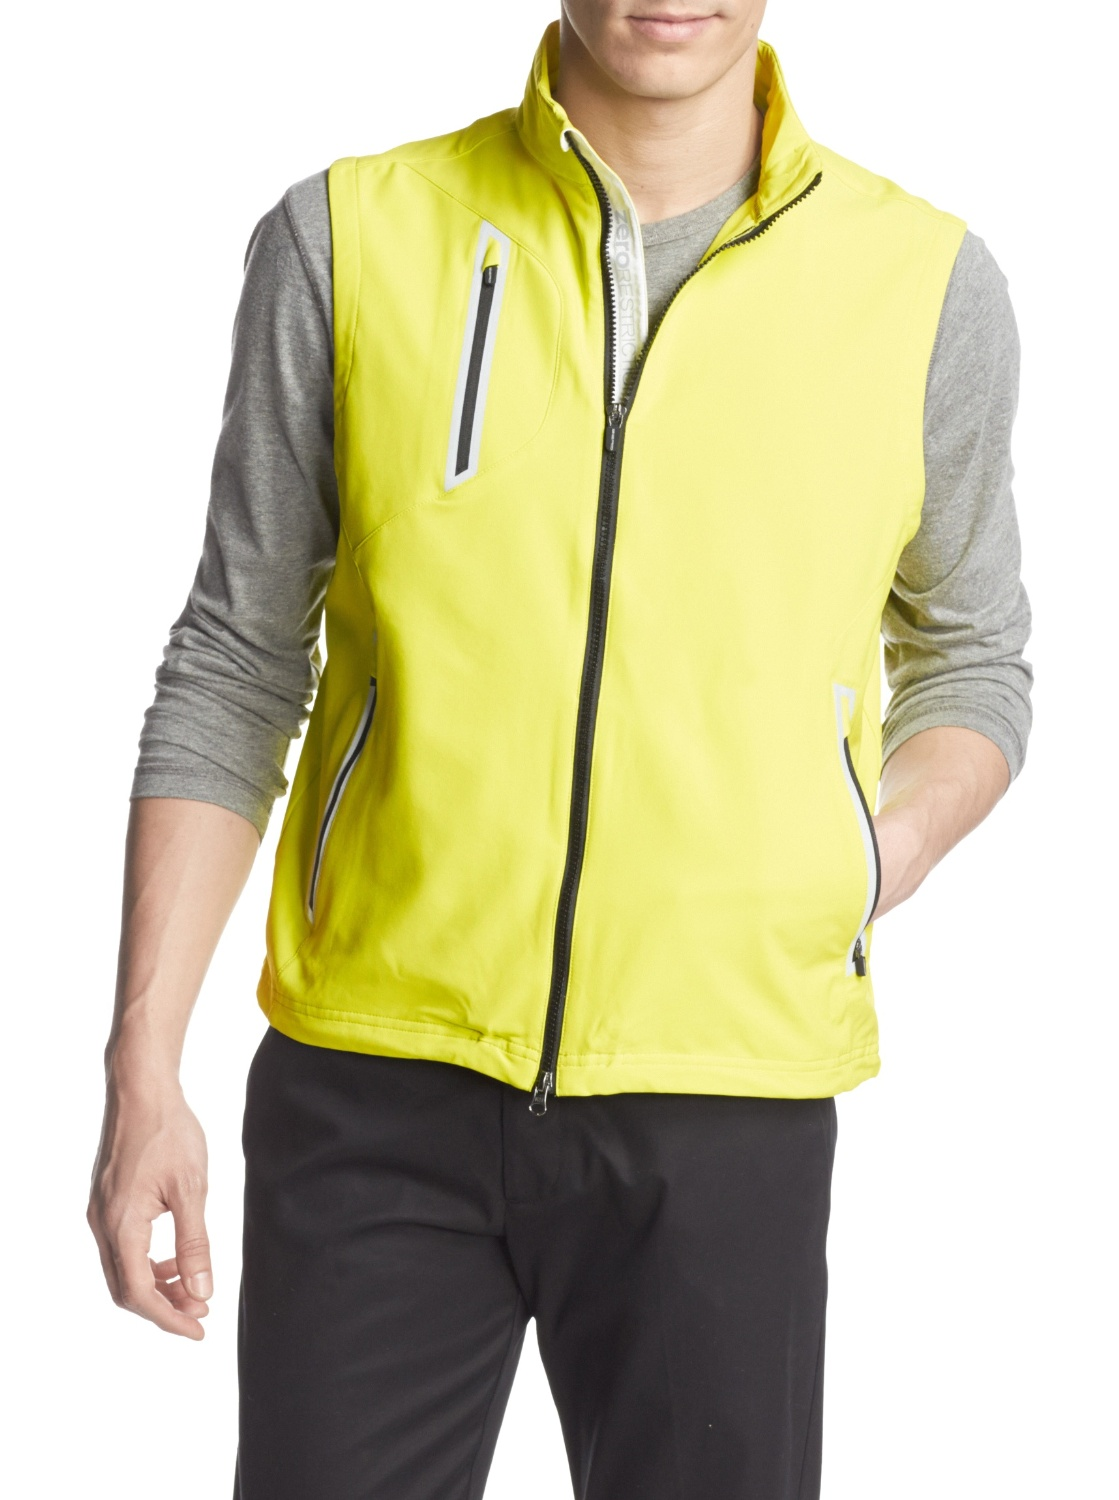 Zero Restriction Mens Golf Vests